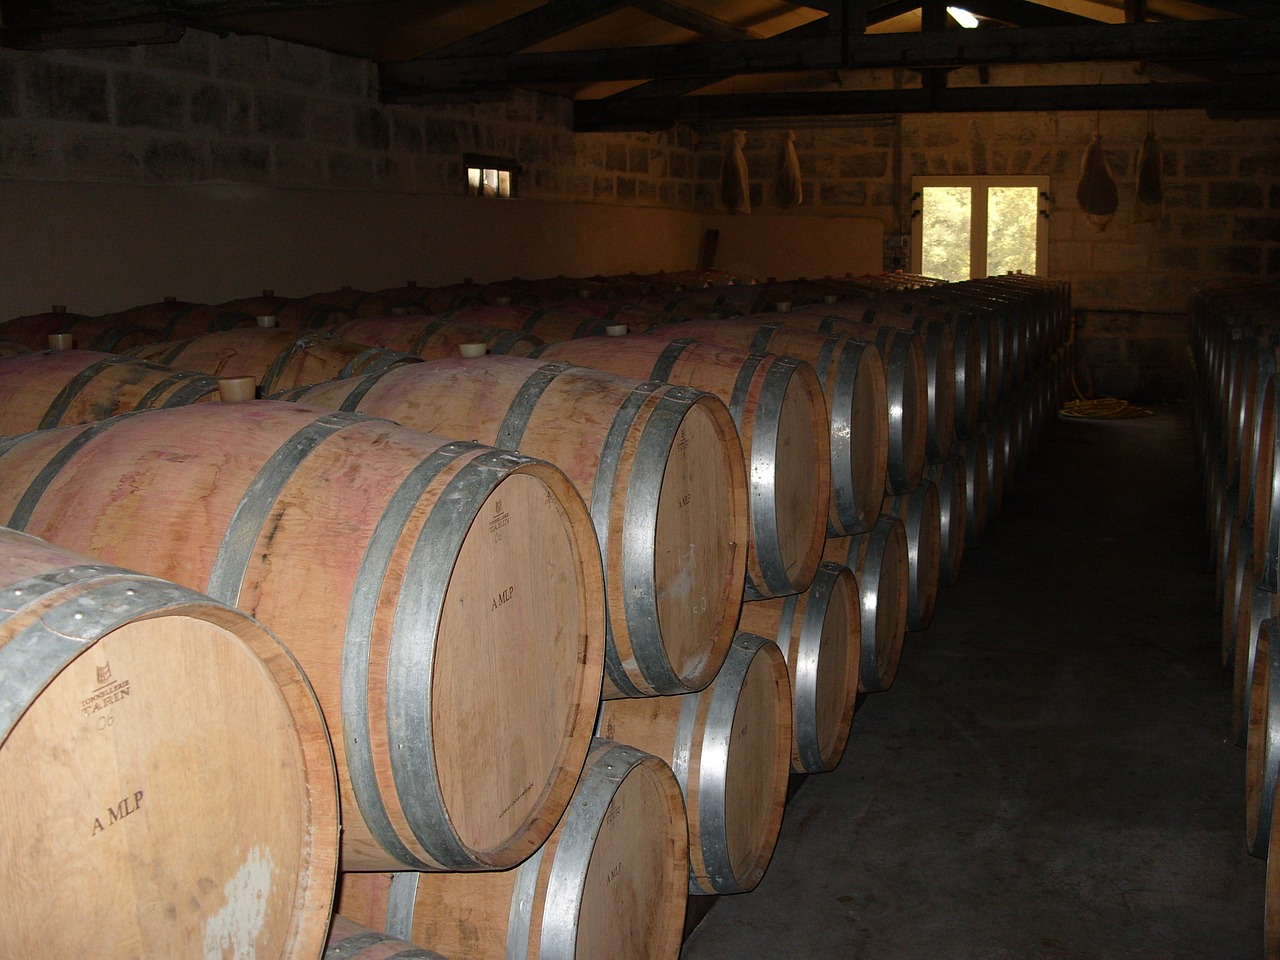 wine cellar,barrels,cask,wine,cellar,free pictures, free photos, free images, royalty free, free illustrations